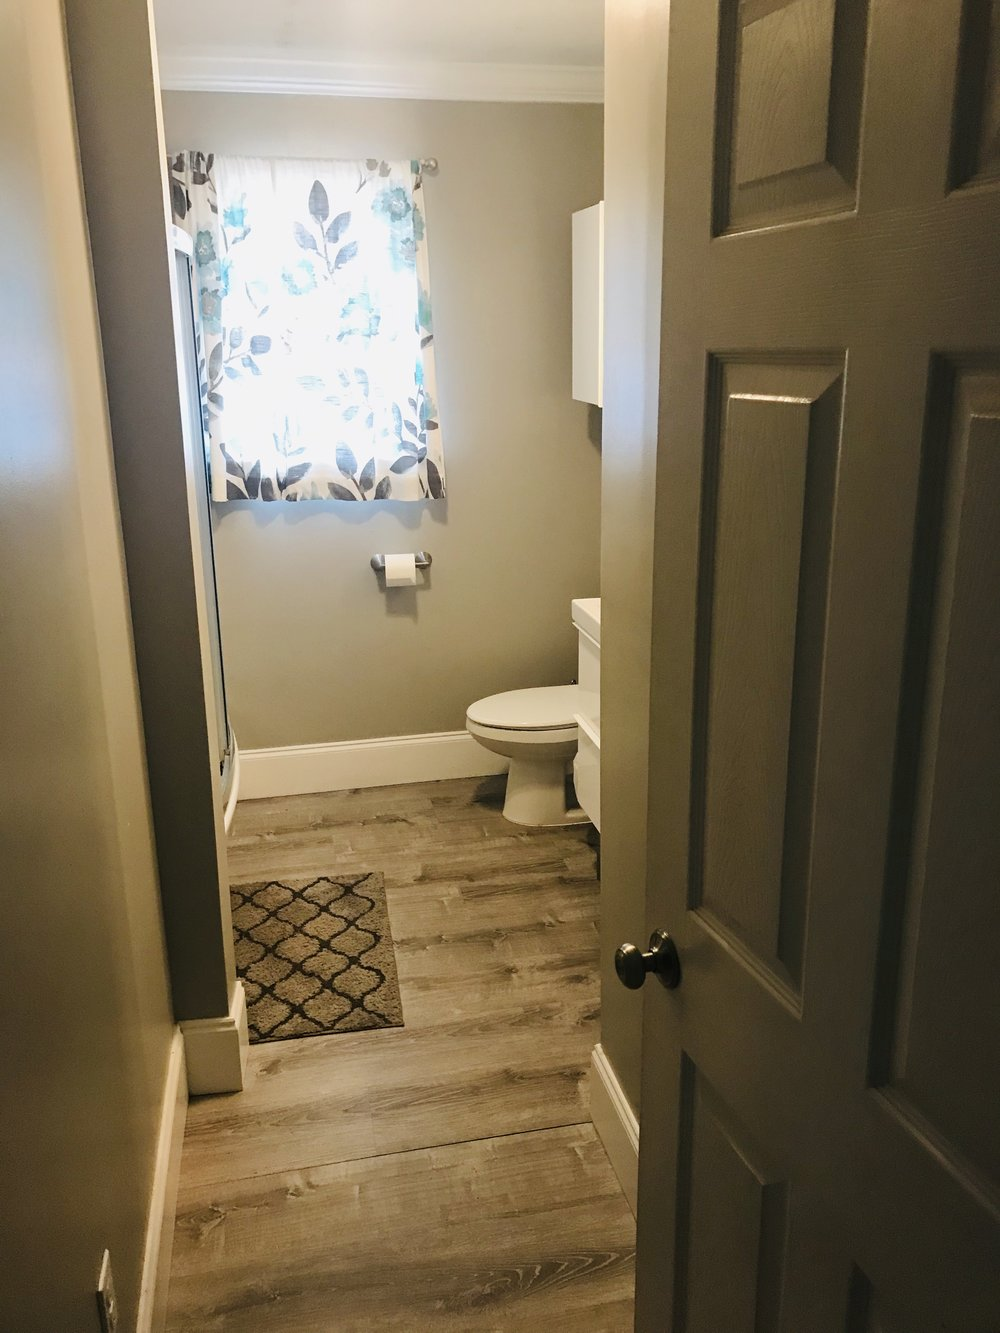 This is the hall bath that we recently updated.